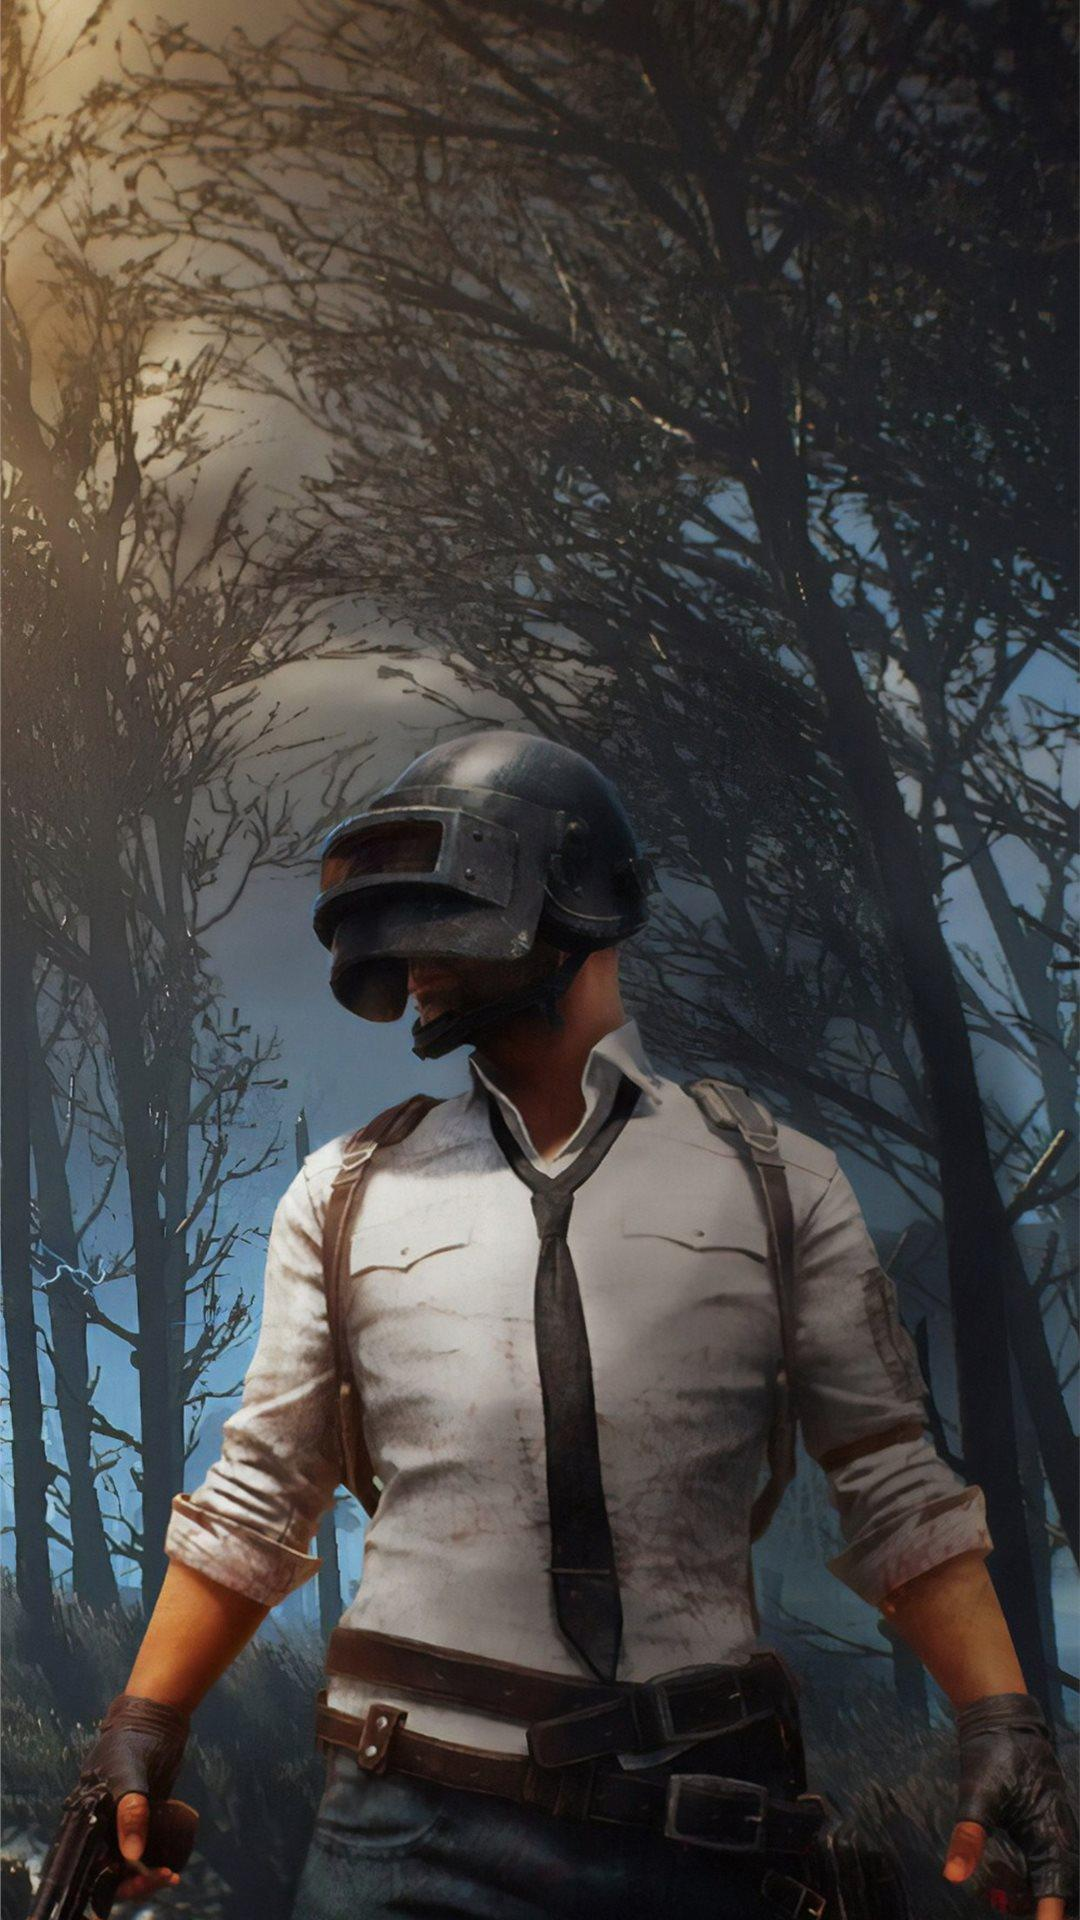 pubg aesthetic wallpapers